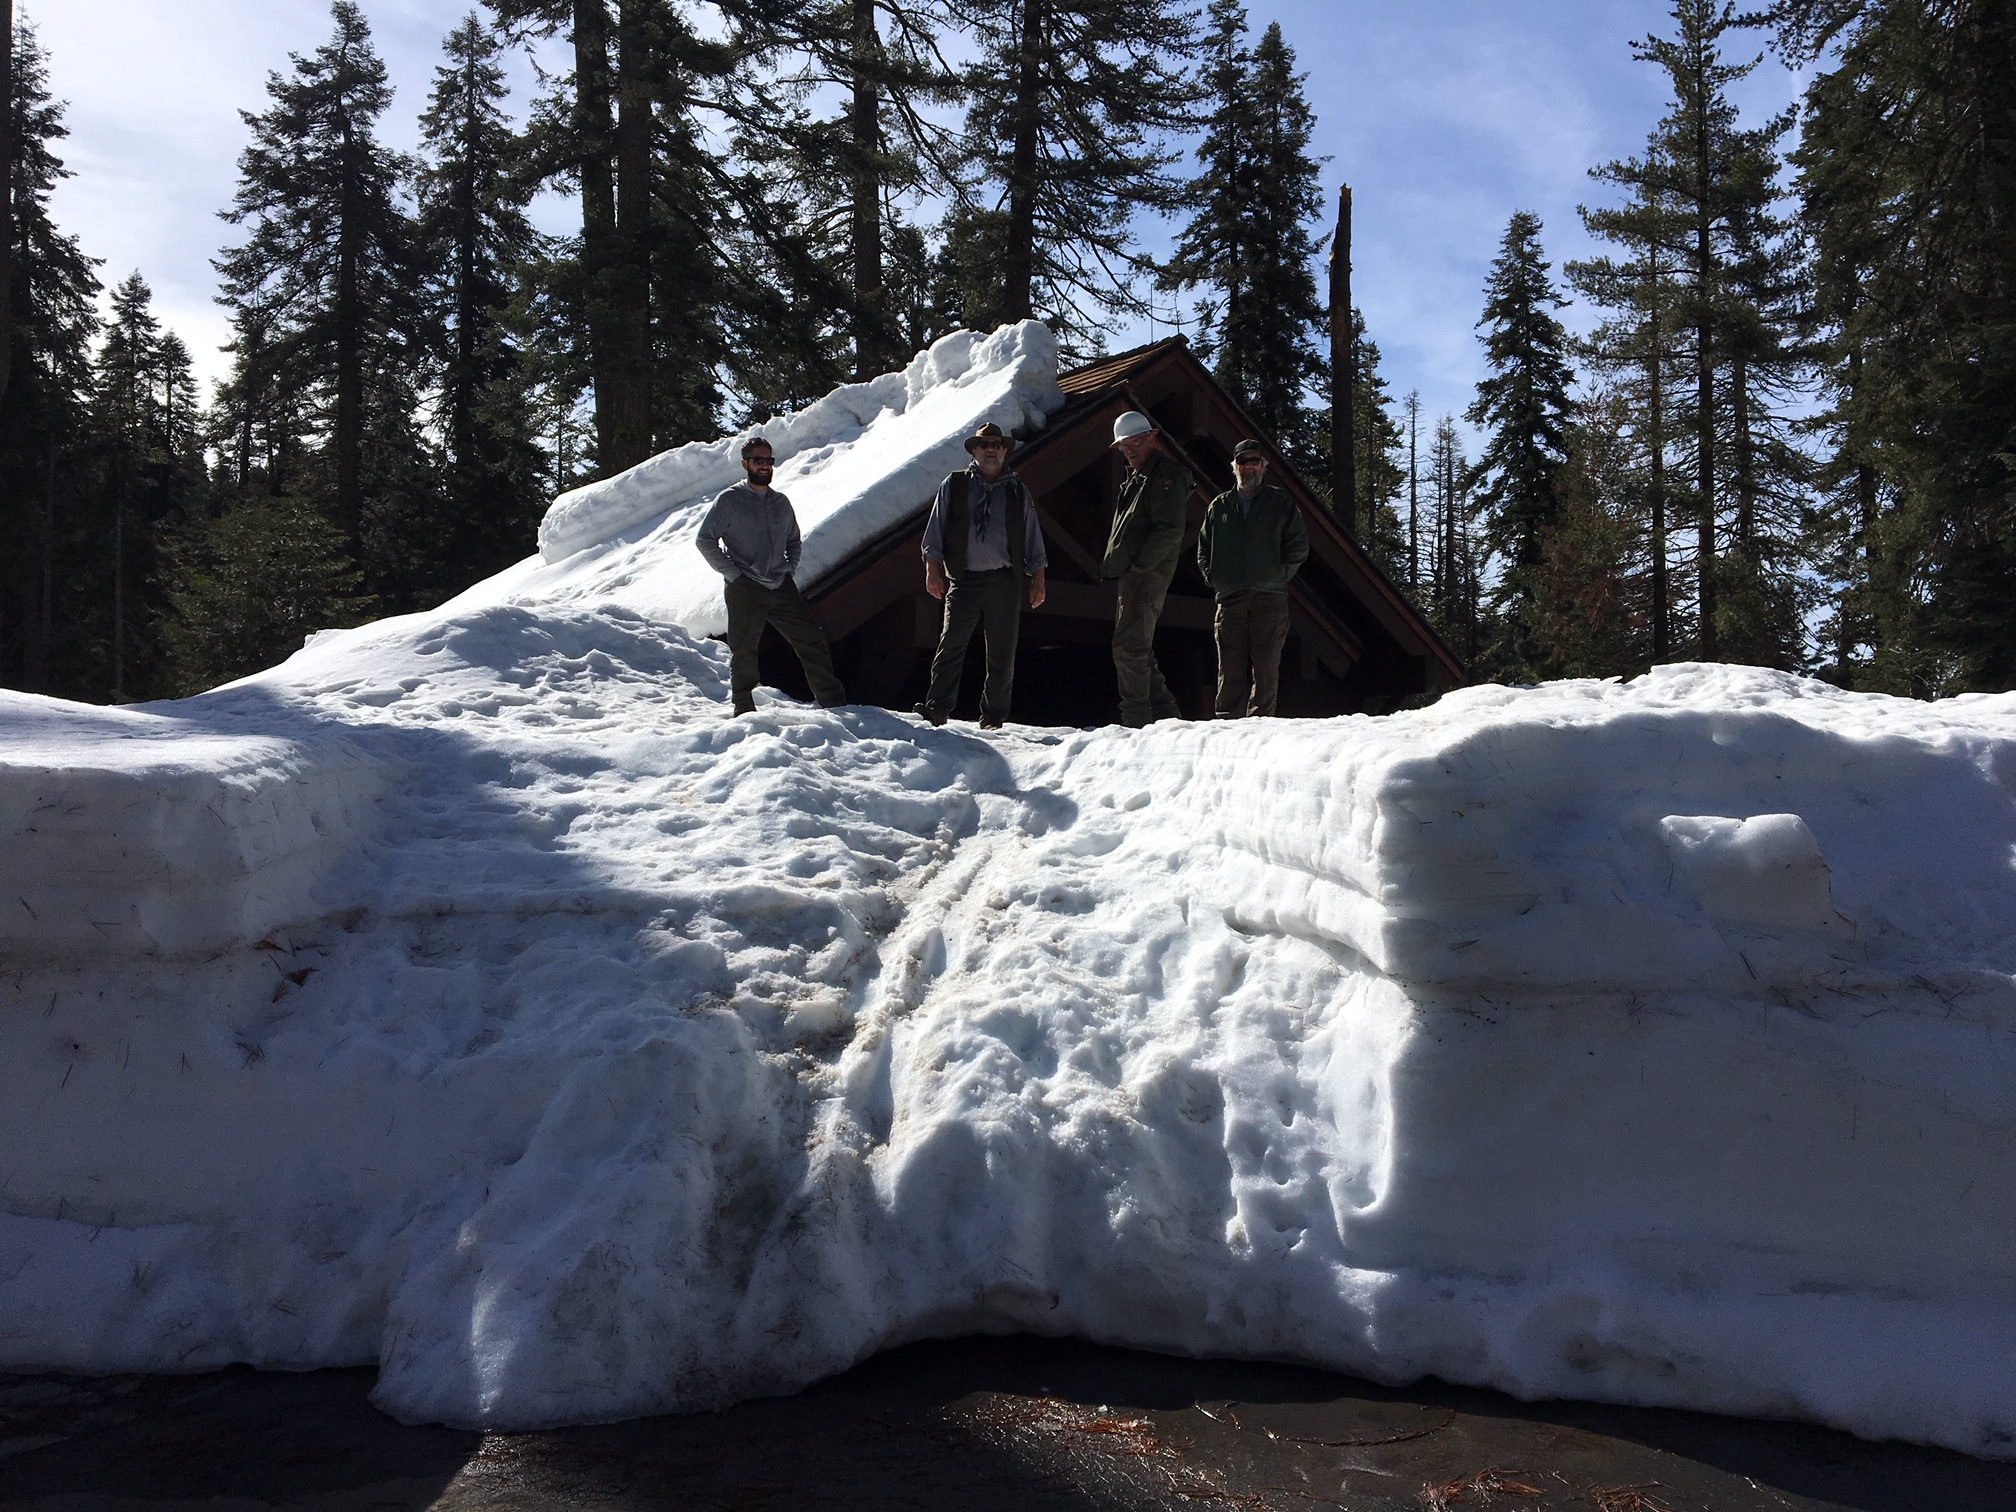 sequoia and kings canyon national parks expect some late